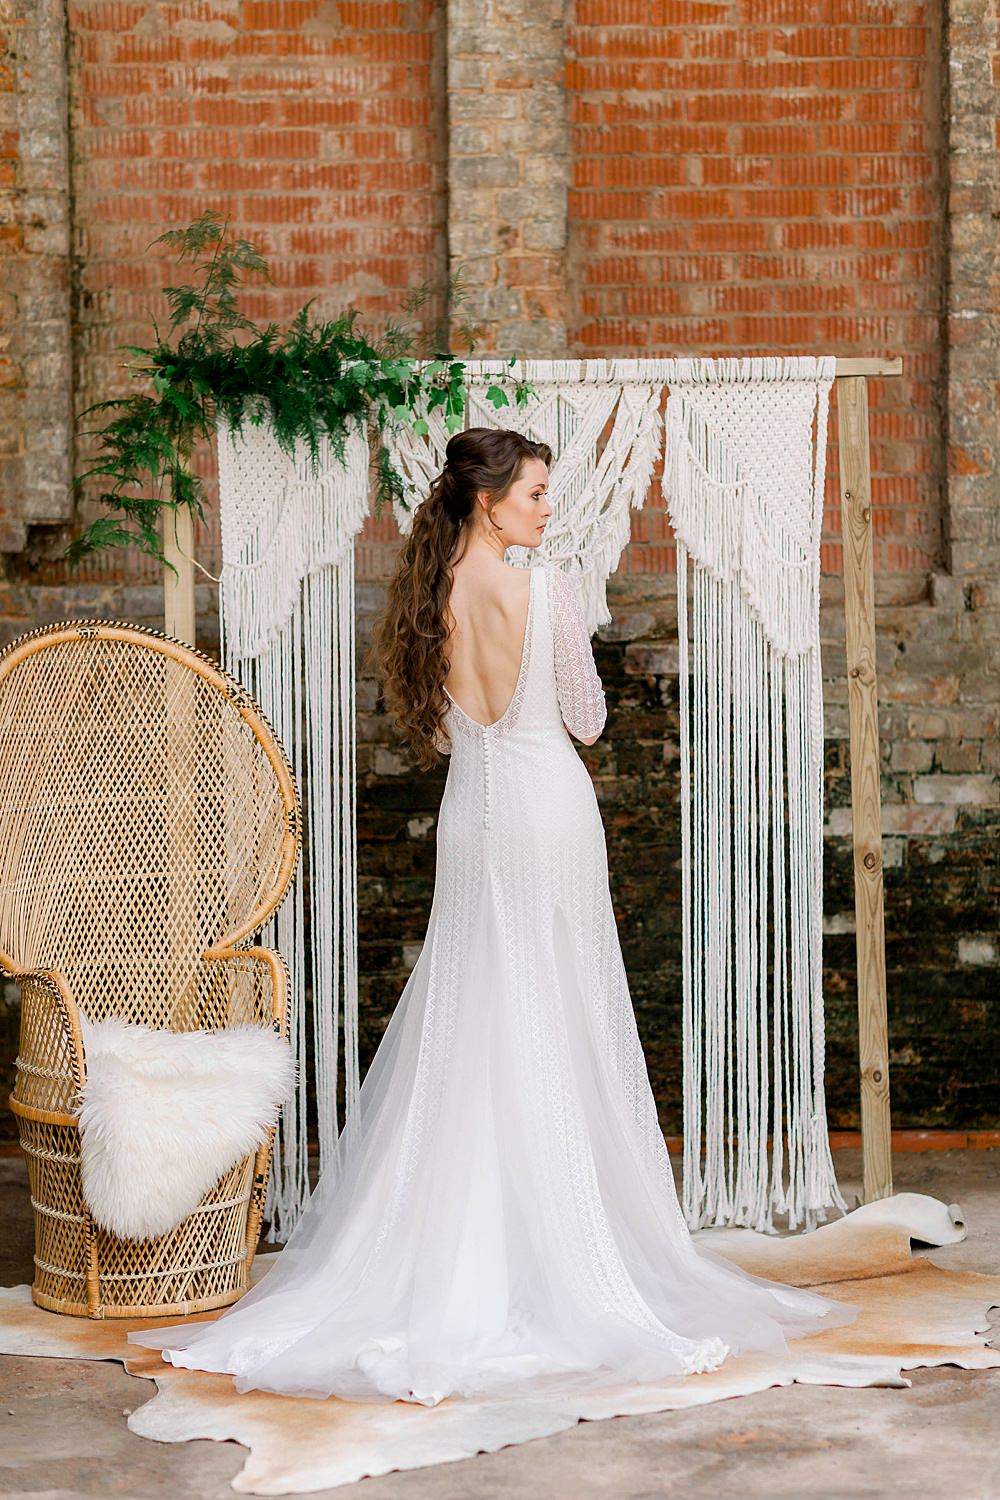 Dress Gown Bride Bridal Stelfox Bride Lace Tulle Low Back Sleeves Train Natural Boho Industrial Wedding Ideas Jo Bradbury Photography